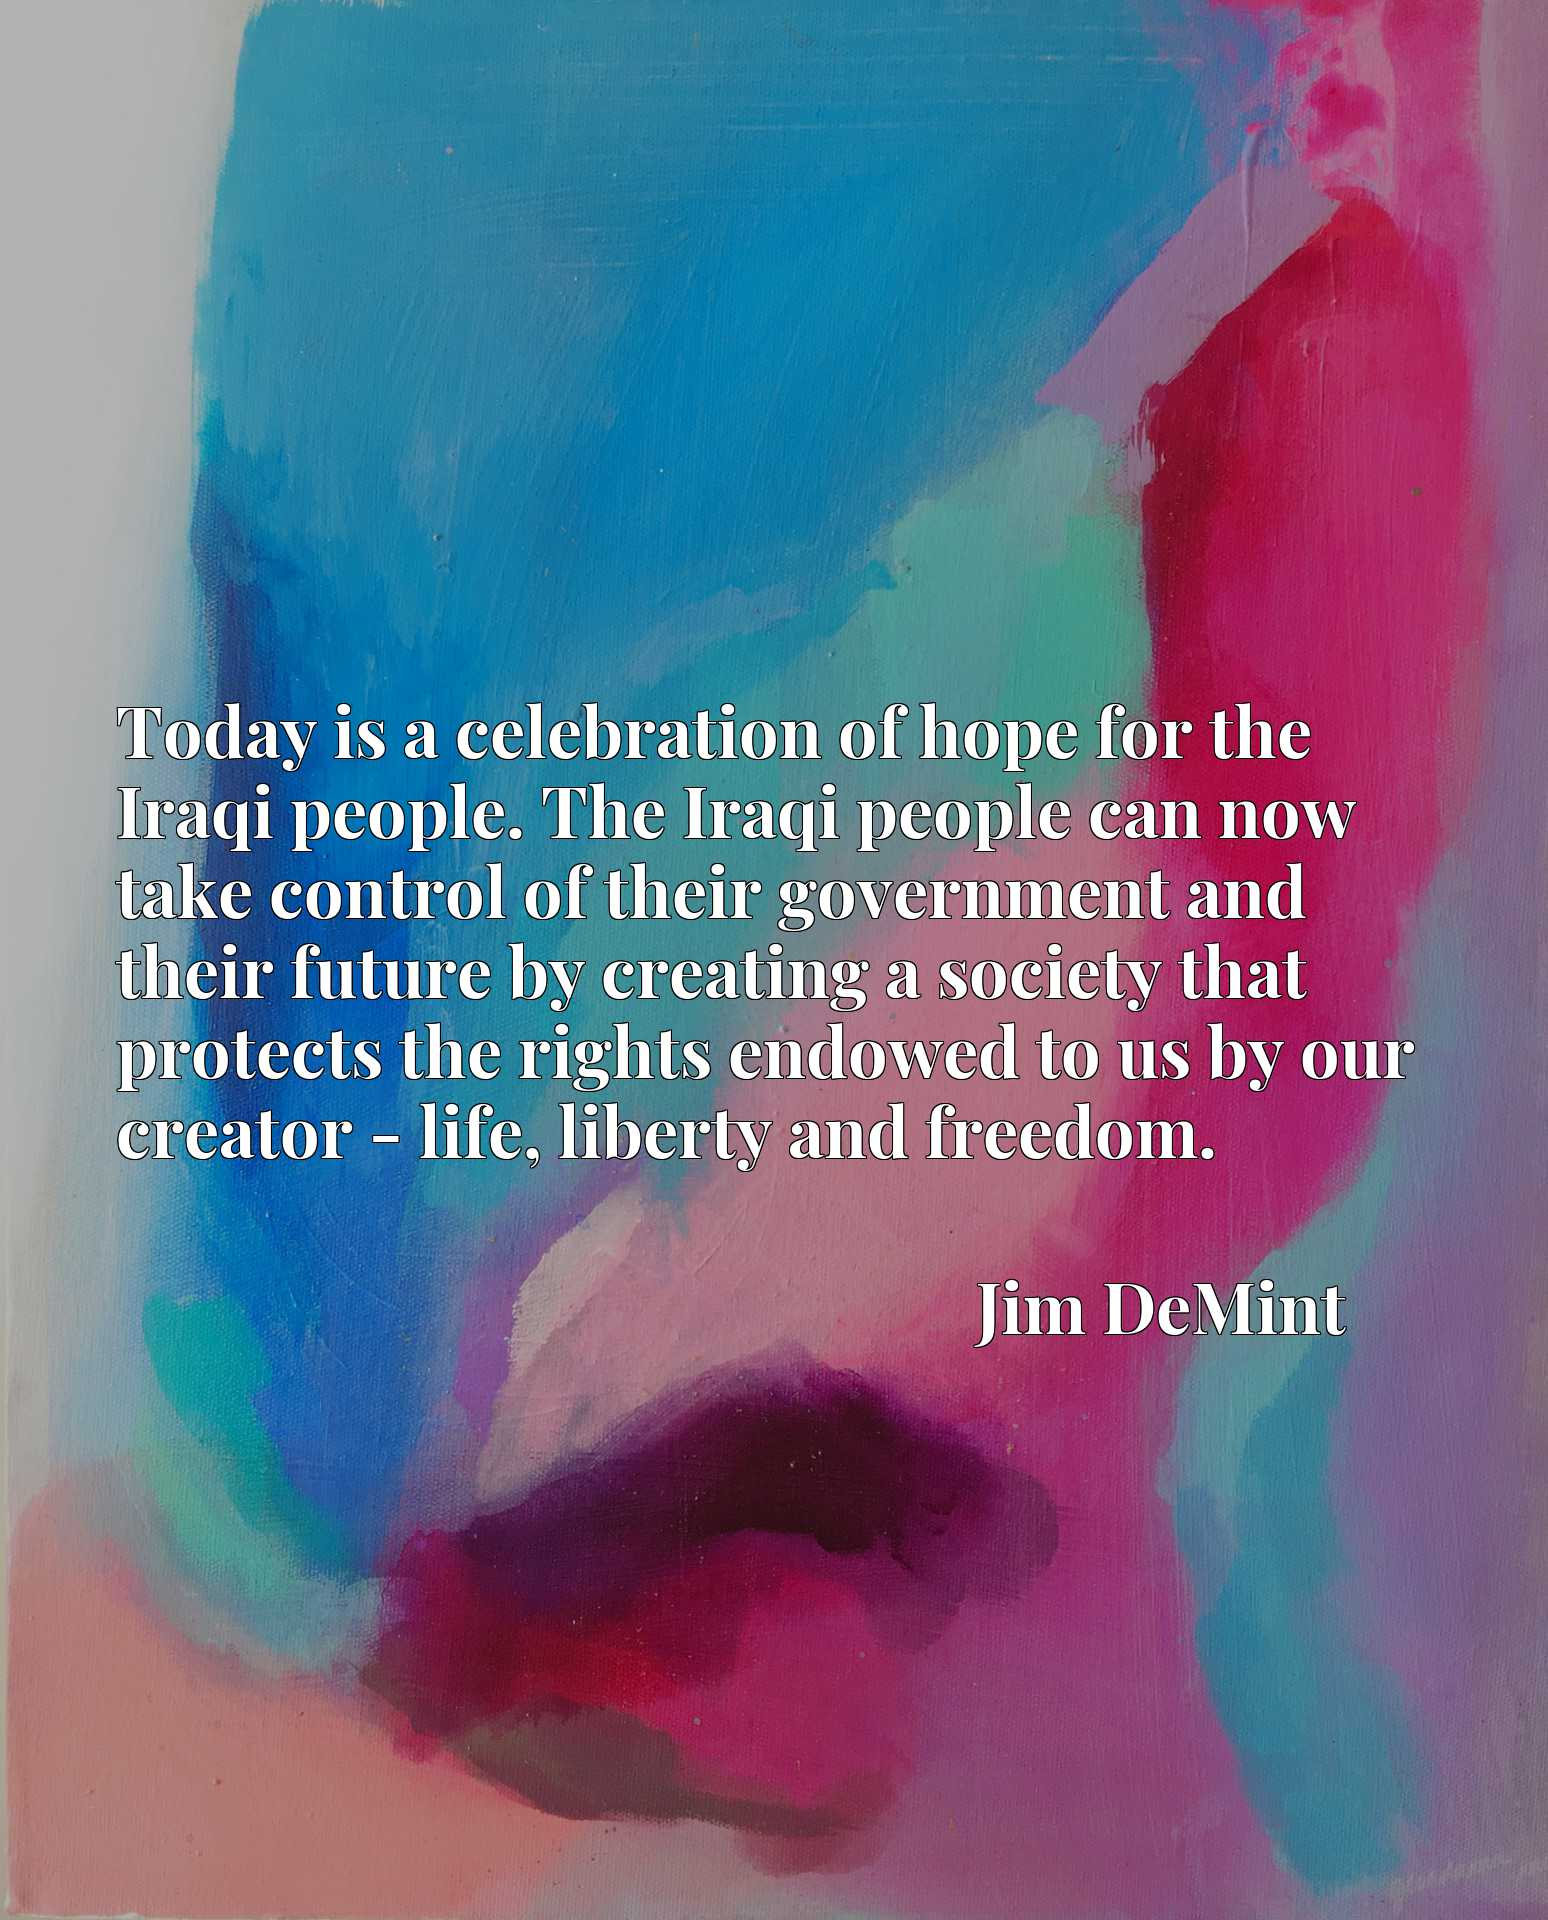 Today is a celebration of hope for the Iraqi people. The Iraqi people can now take control of their government and their future by creating a society that protects the rights endowed to us by our creator - life, liberty and freedom.